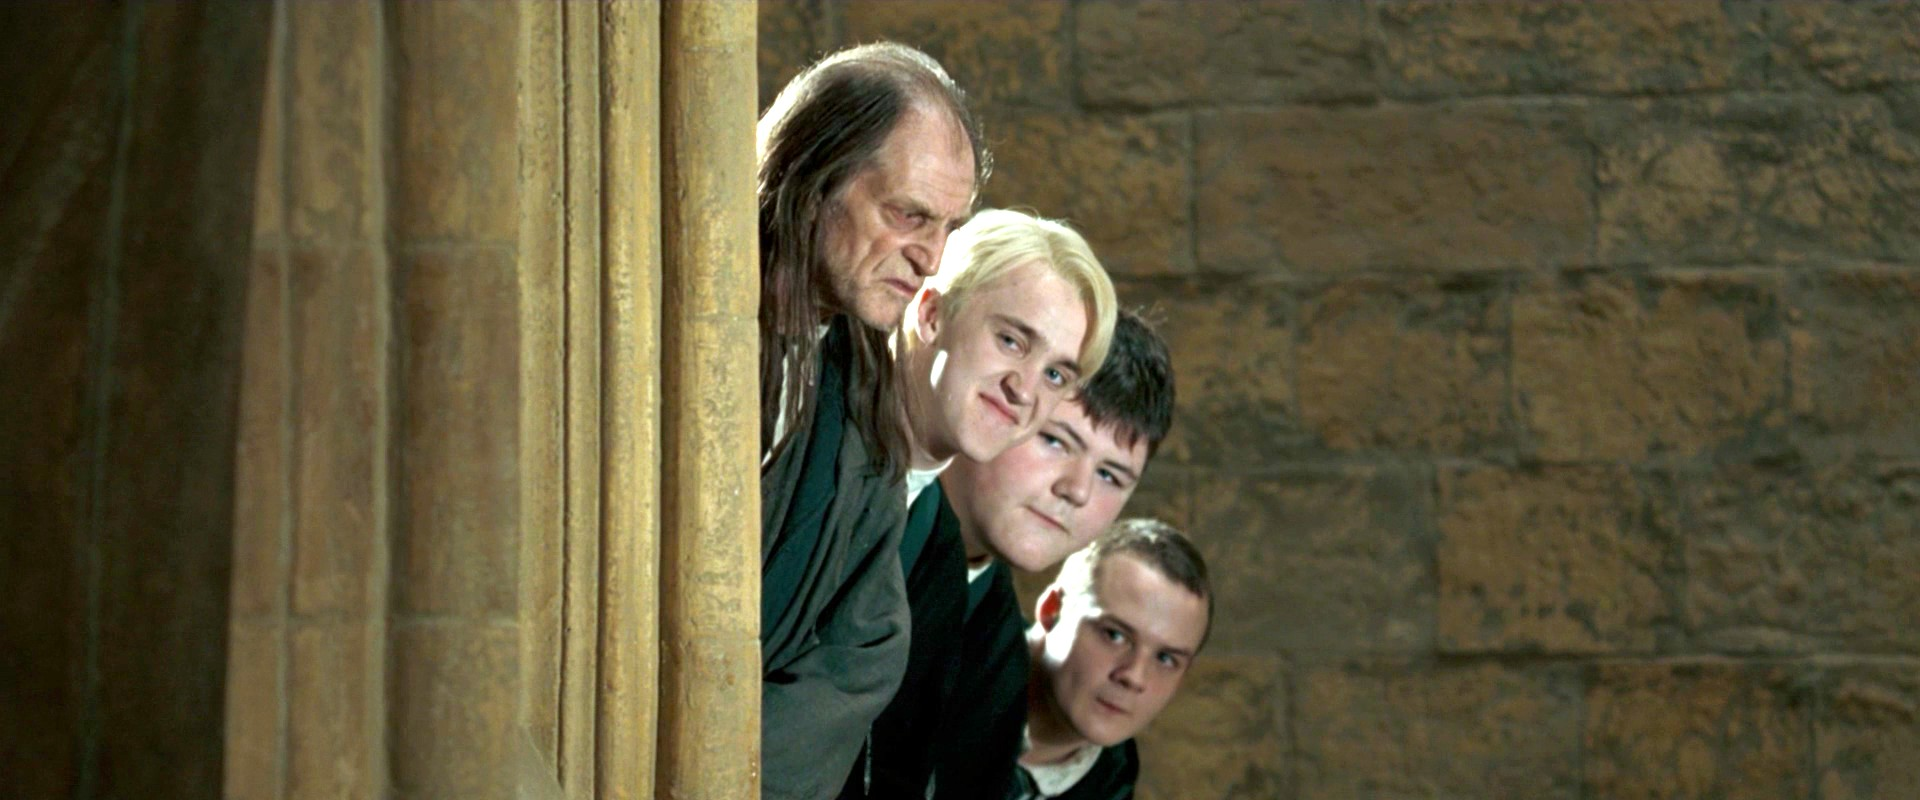 Harry Potter And The Order Of The Phoenix 2007 Josh herdman, left, who played gregory goyle in the harry potter films, made his mma debut in a cage match in london over the weekend. harry potter and the order of the